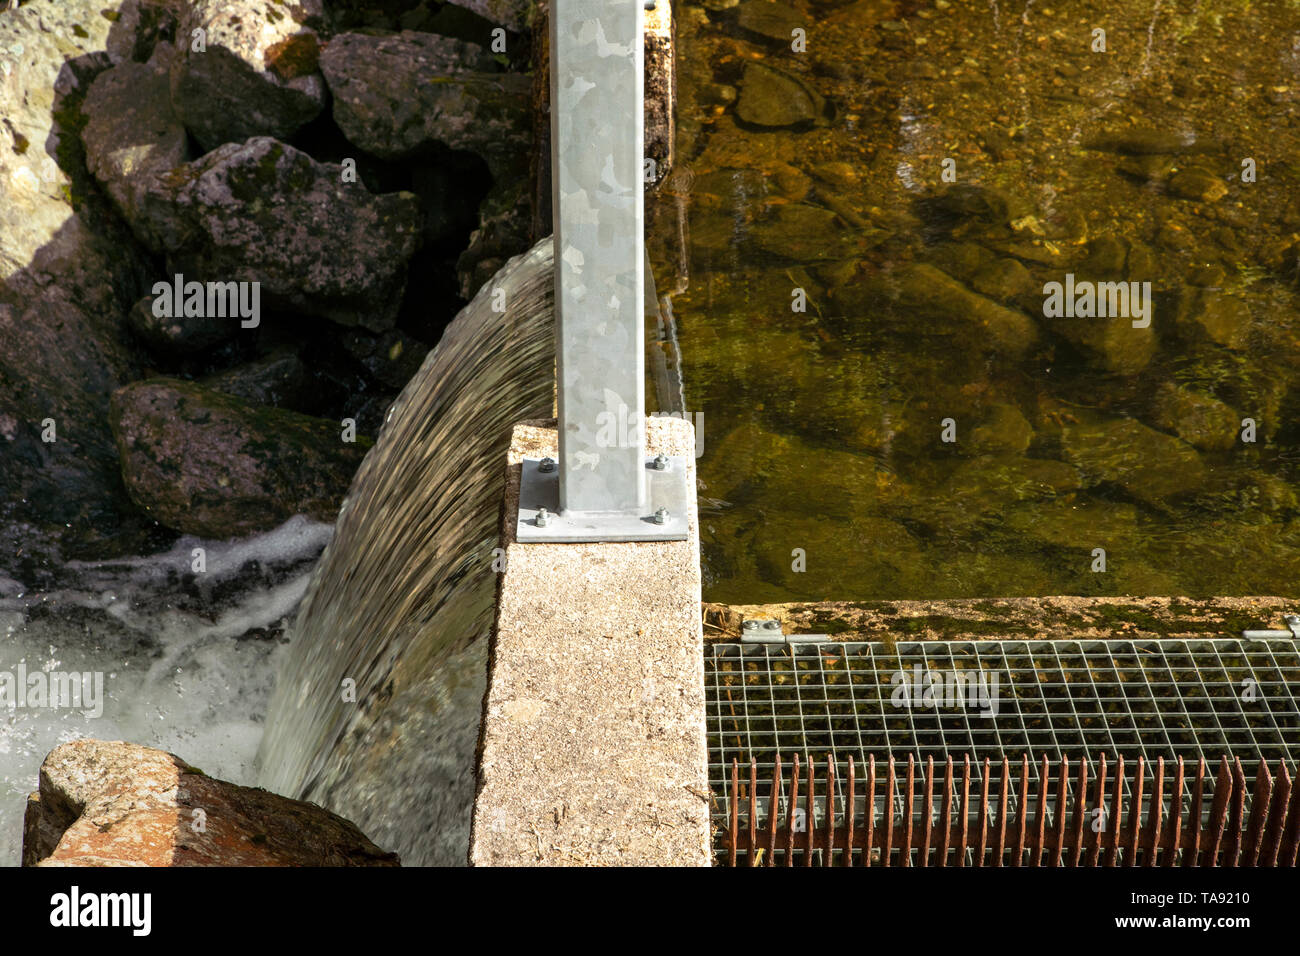 Spillway over a small dam close up. Water level difference. Regulation of the water level in the lake. Stock Photo